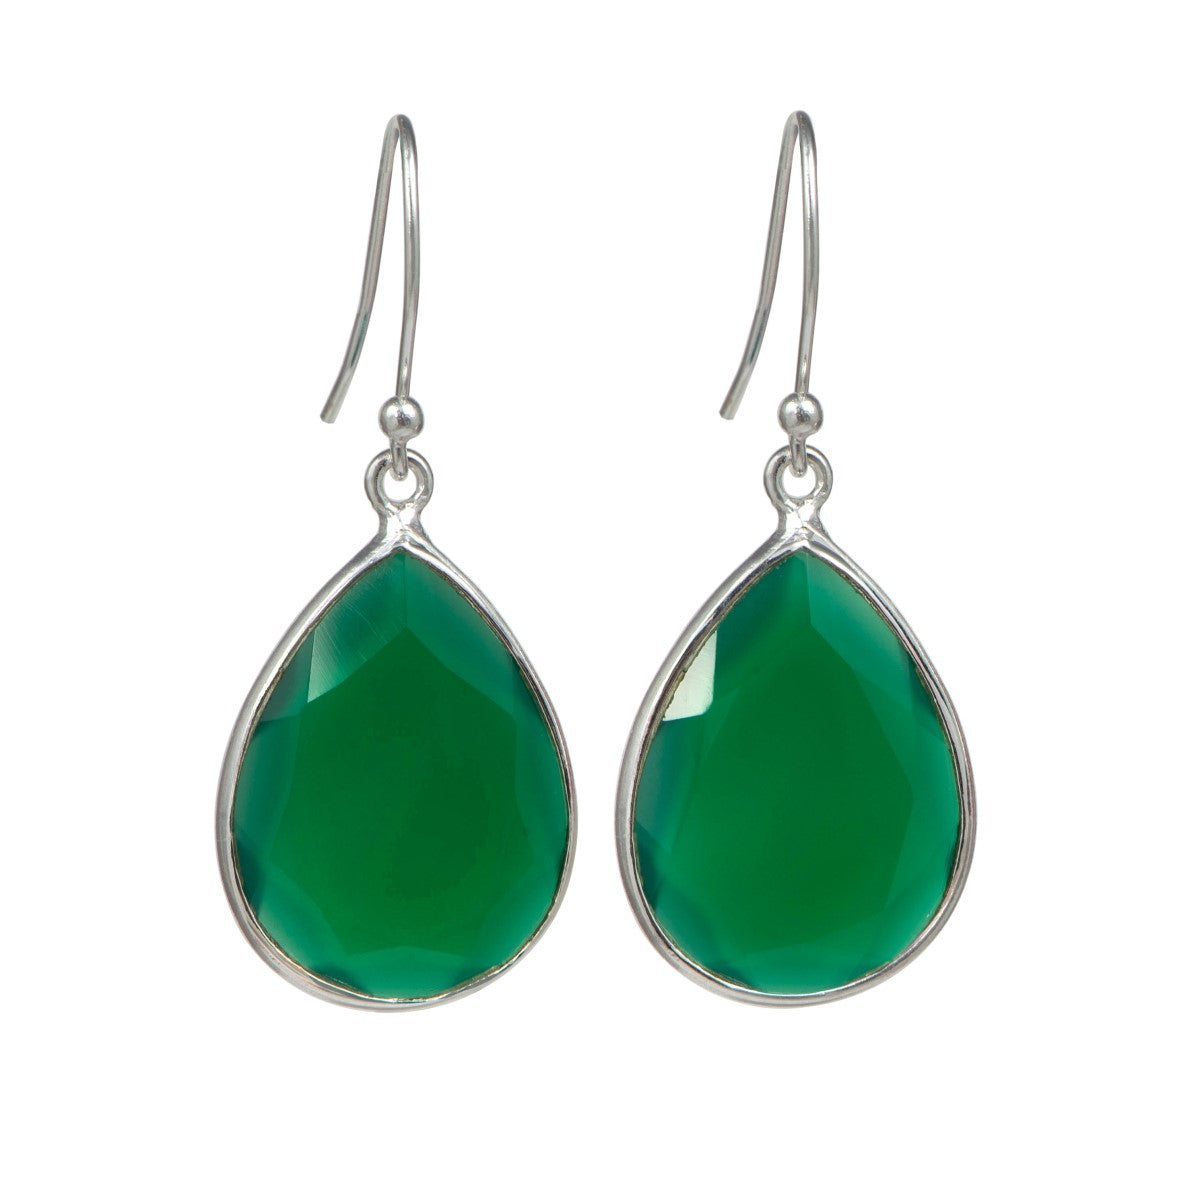 Green Onyx Sterling Silver Earrings with a Tear Drop Shaped Gemstone